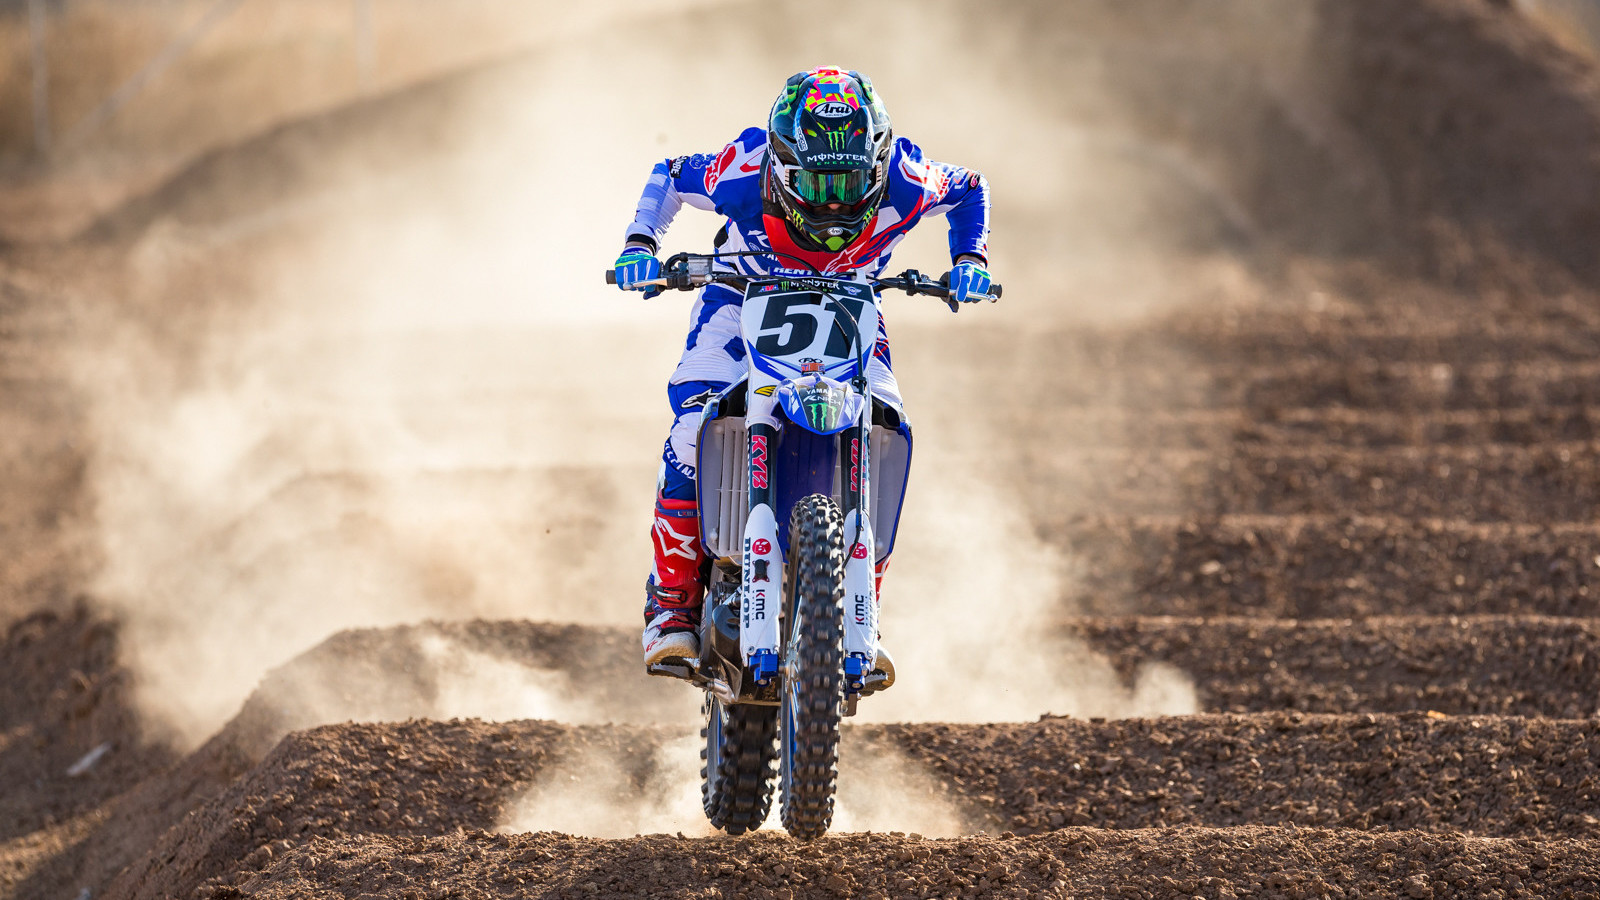 Justin Barcia Extends Contract with Monster Energy/Knich/Yamaha